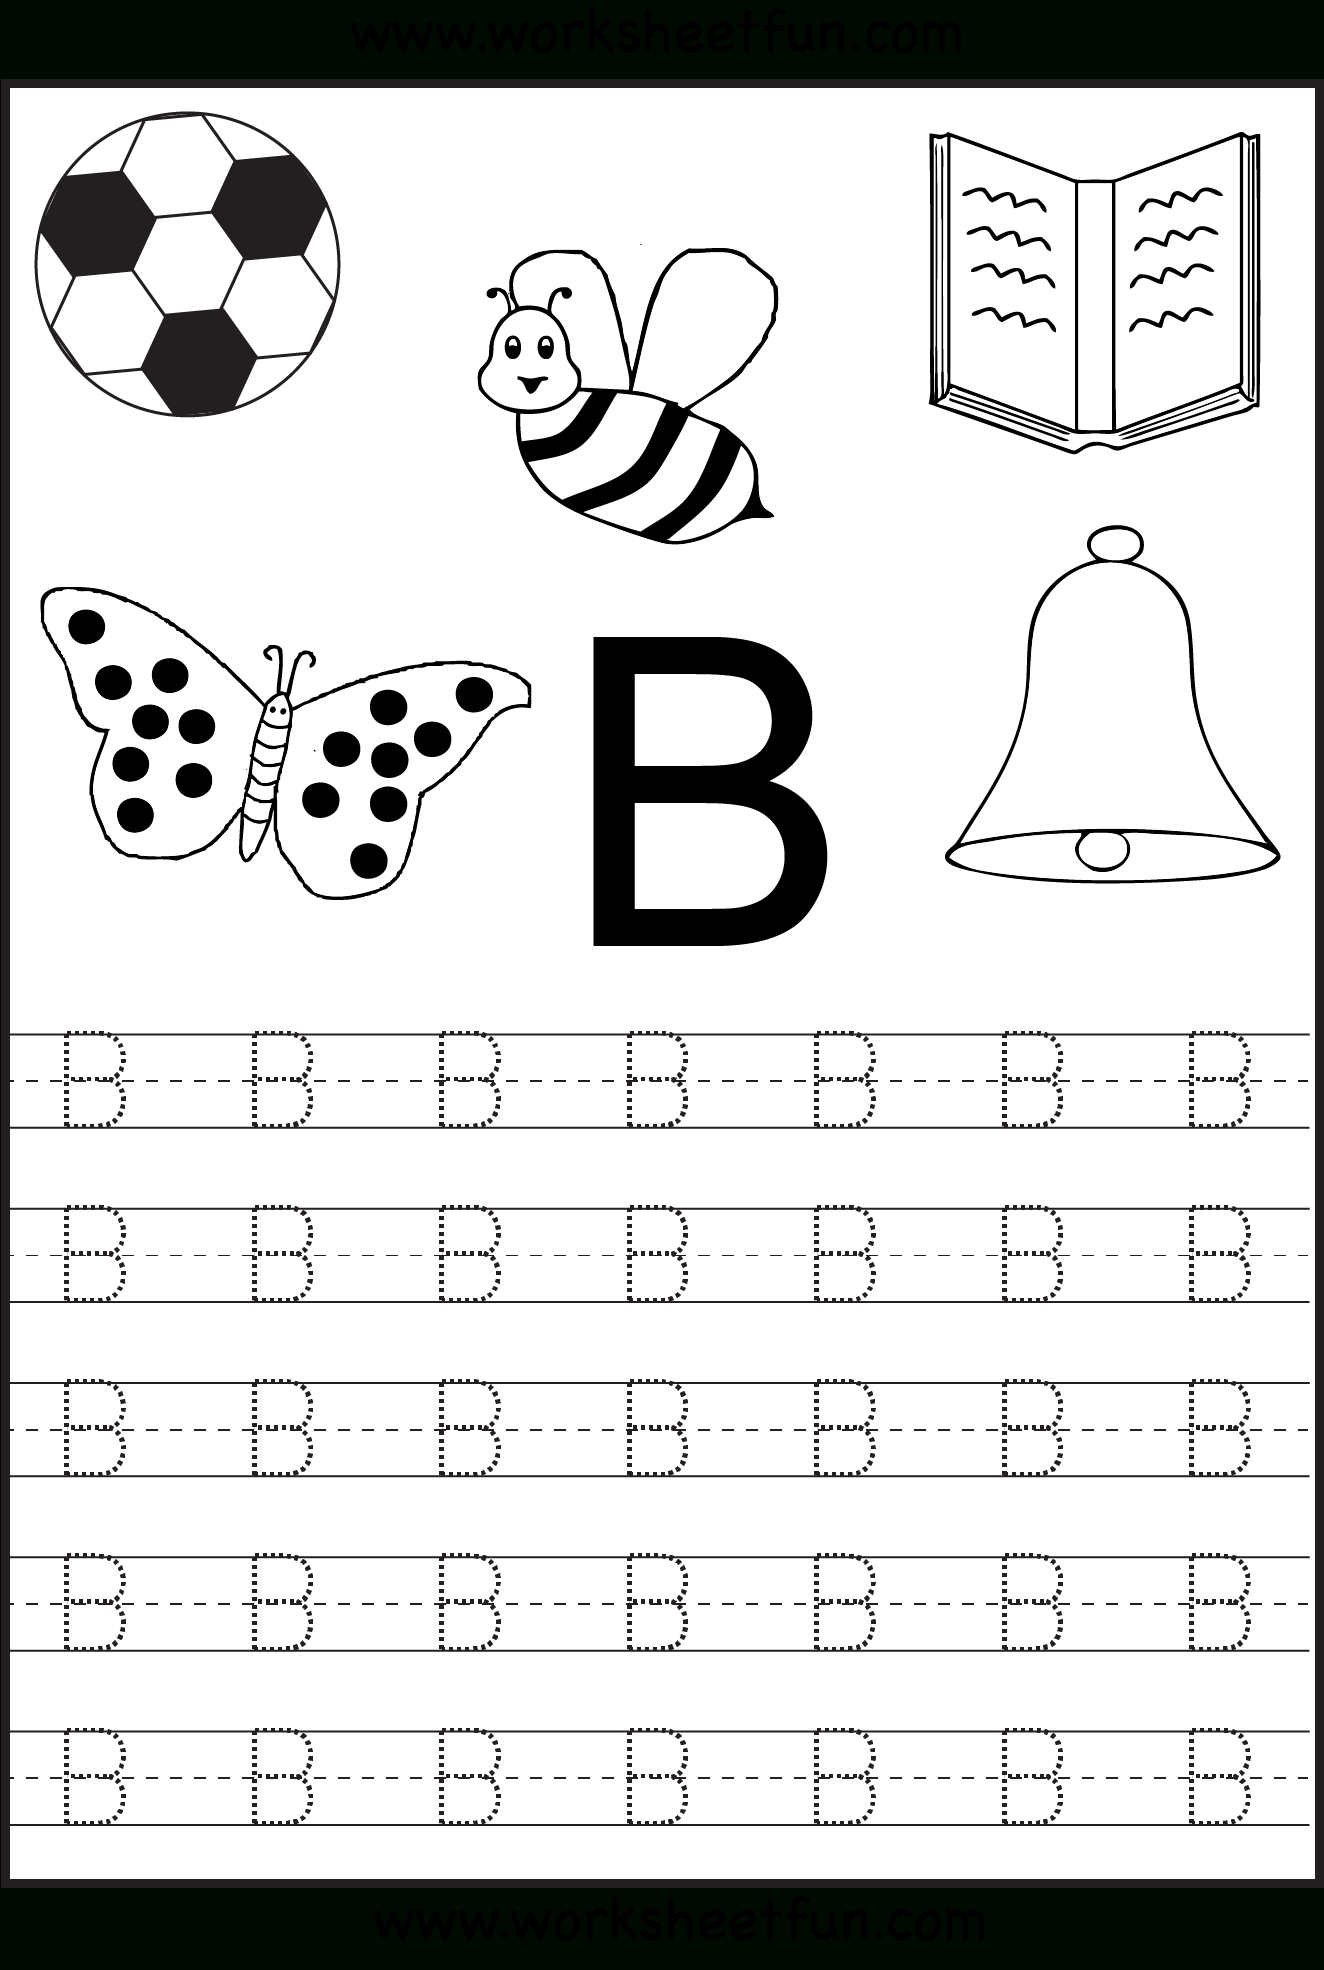 Free Printable Letter Tracing Worksheets For Kindergarten – 26 | Free Printable Tracing Worksheets For Preschoolers